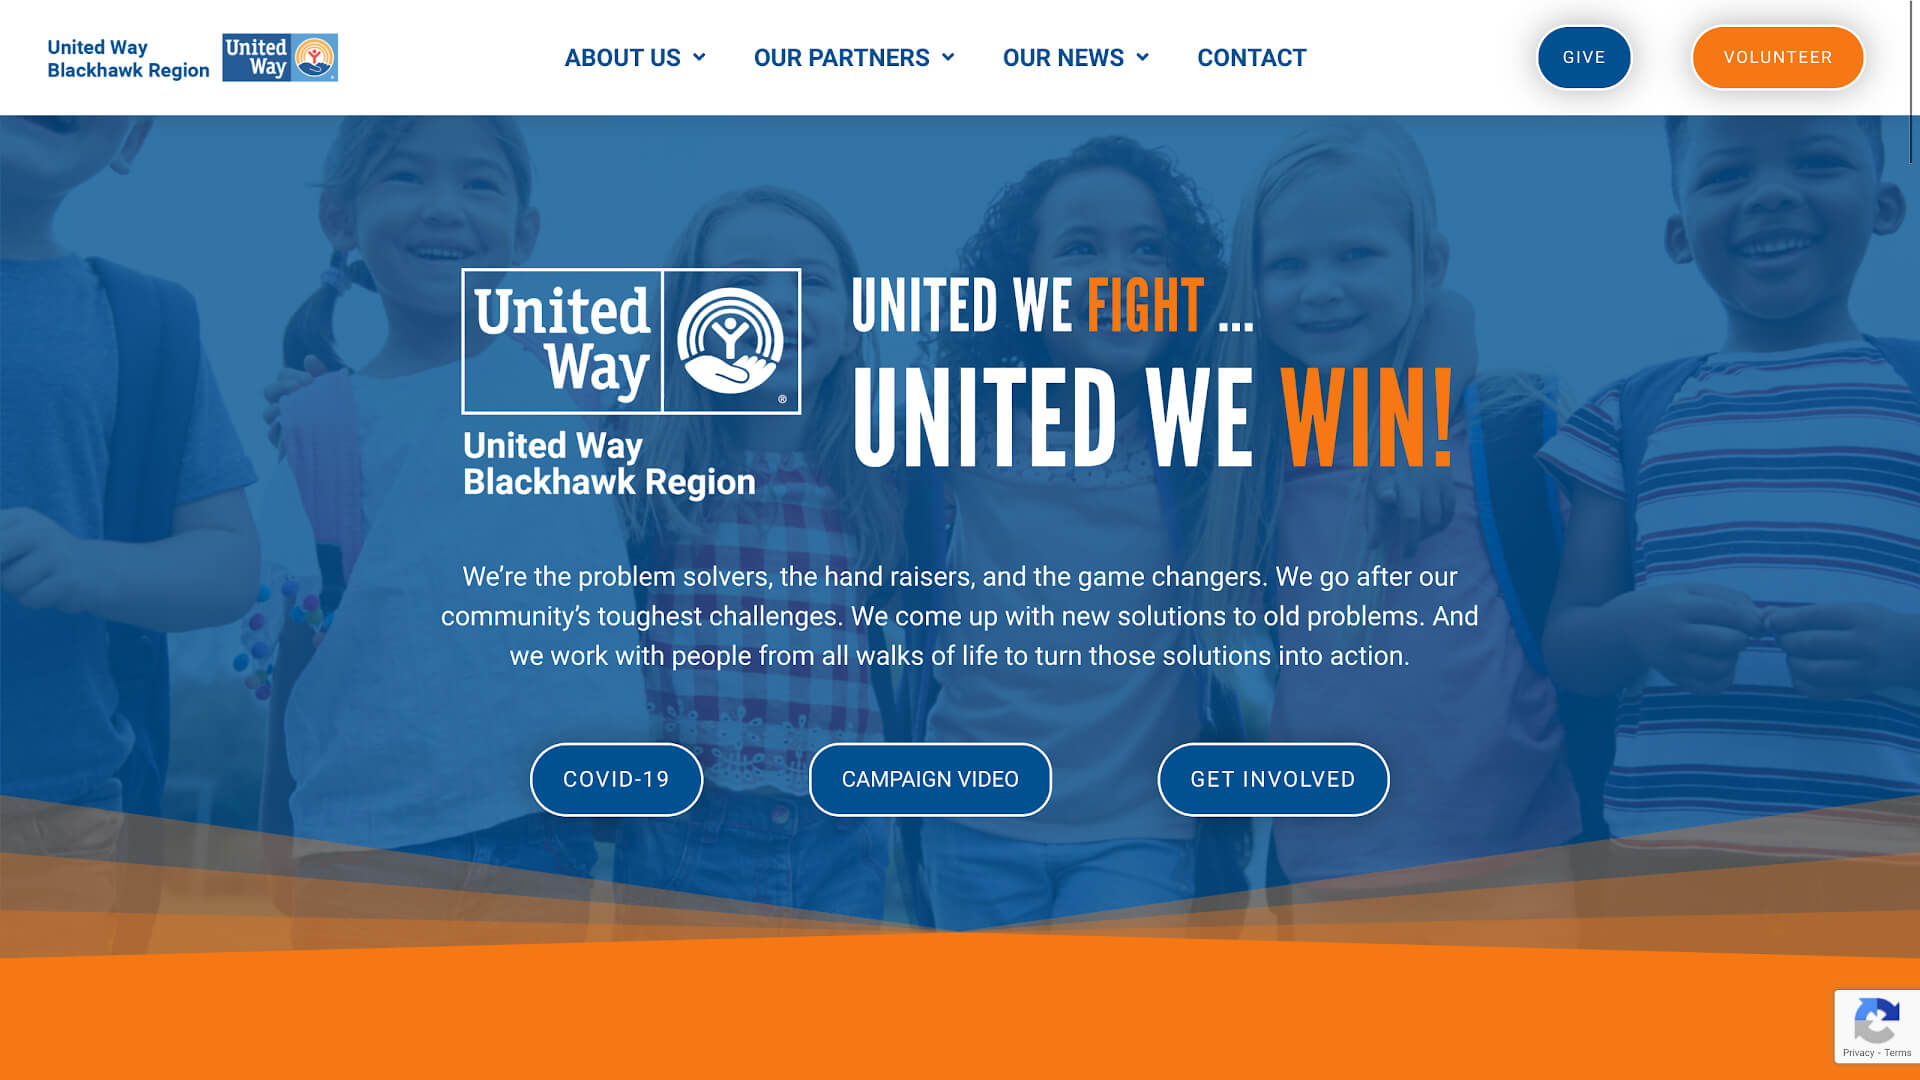 Screenshot of United Way Blackhawk Region homepage from Nov. 1, 2020